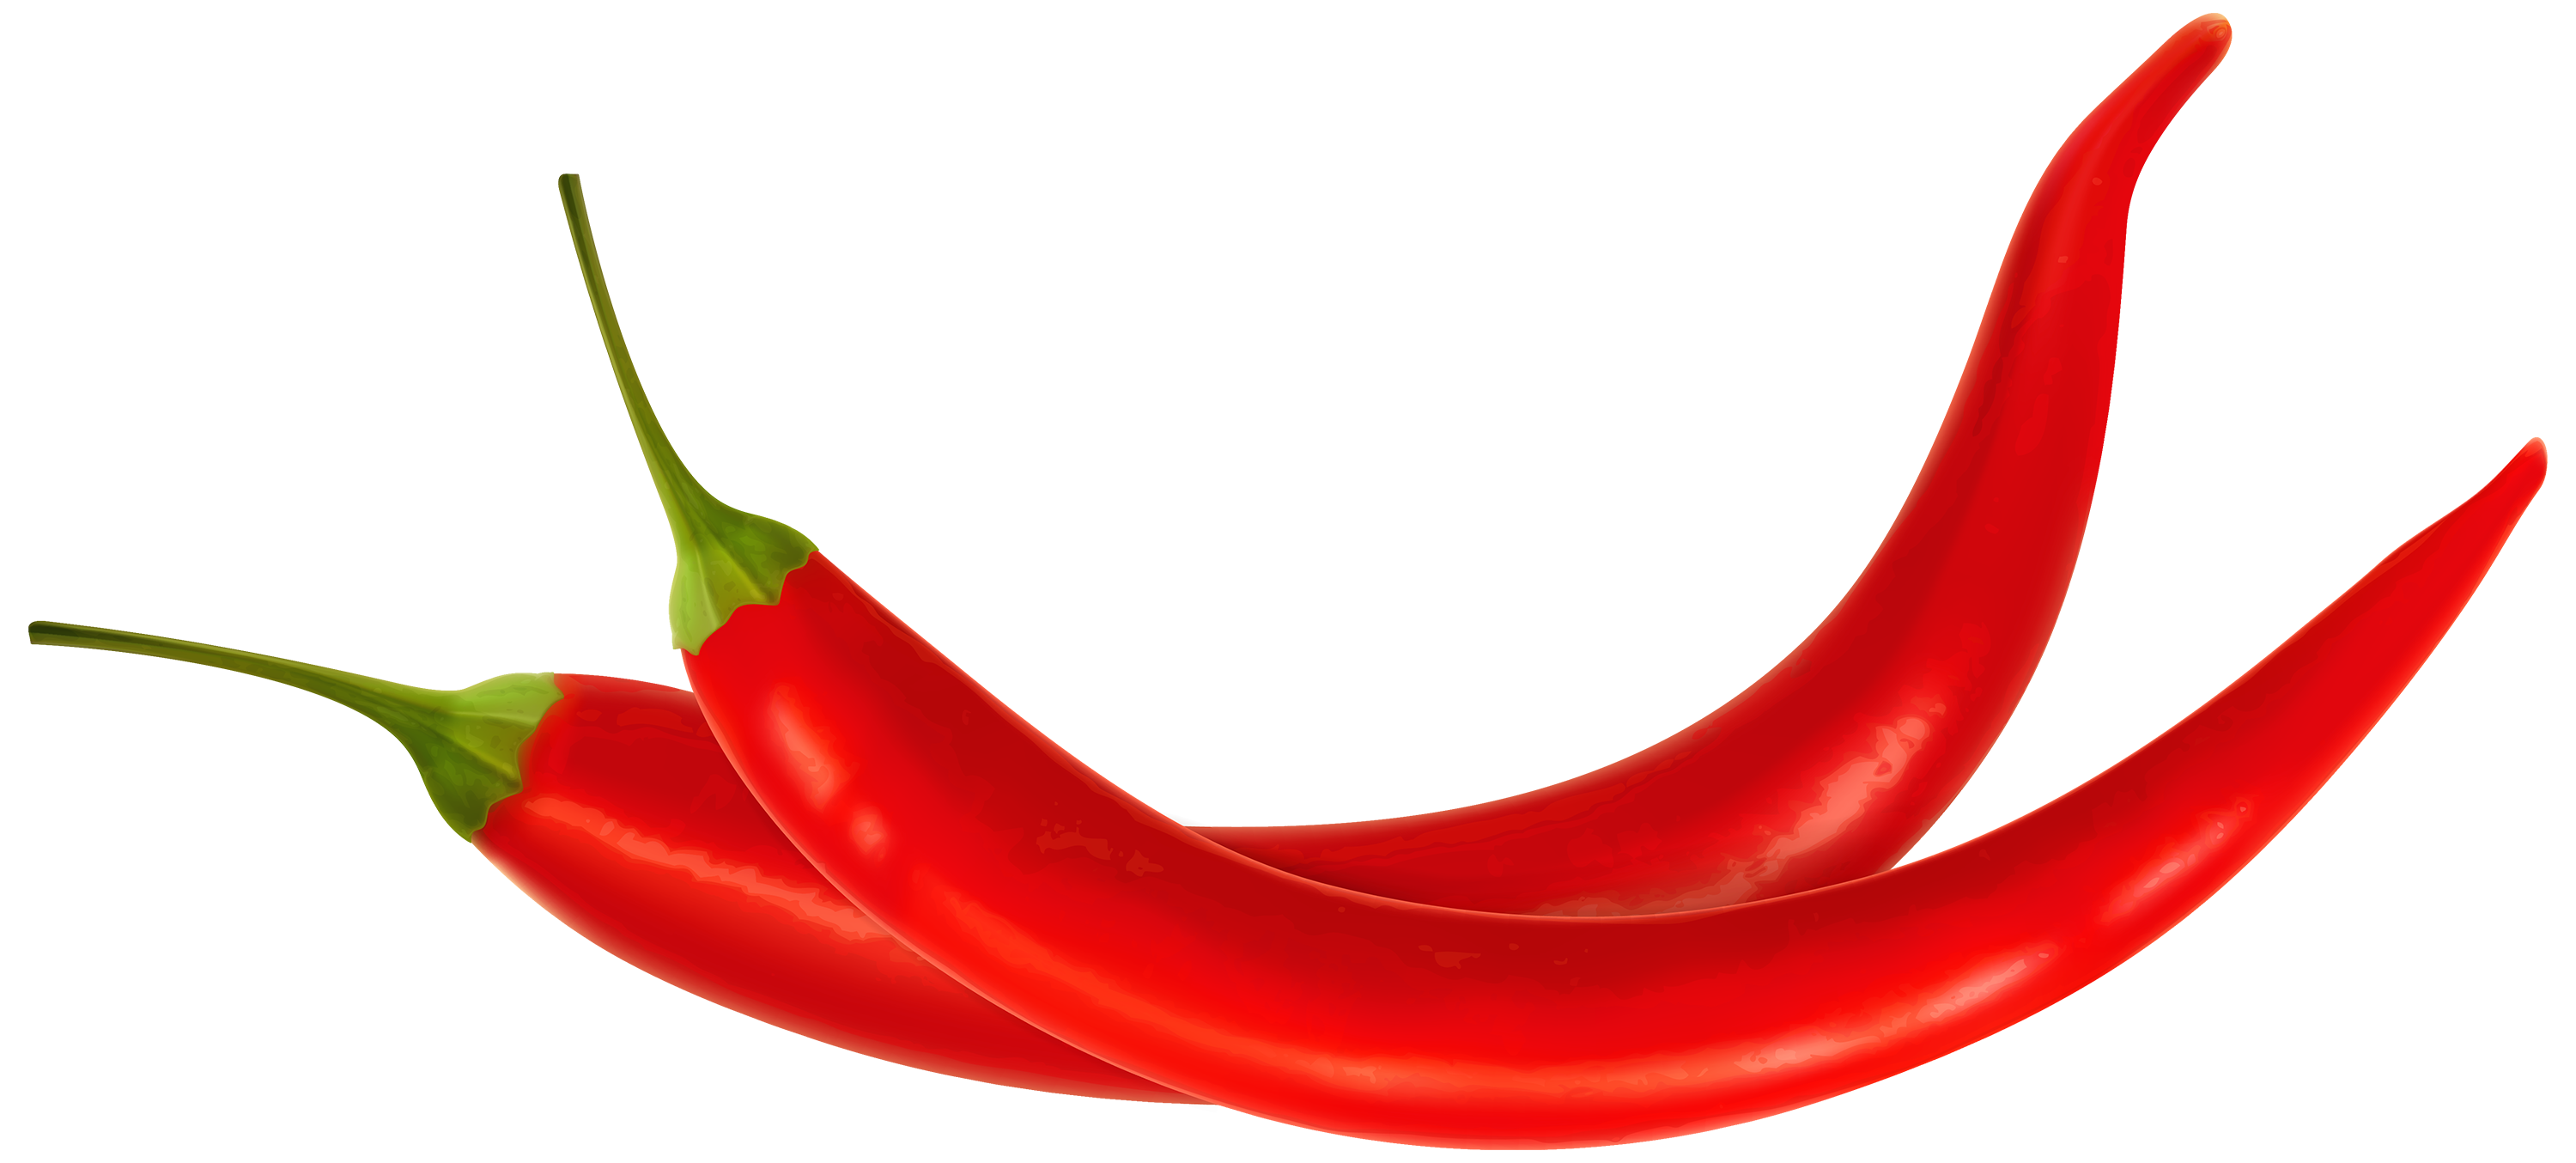 3000x1354 Red Chili Peppers Png Clipart